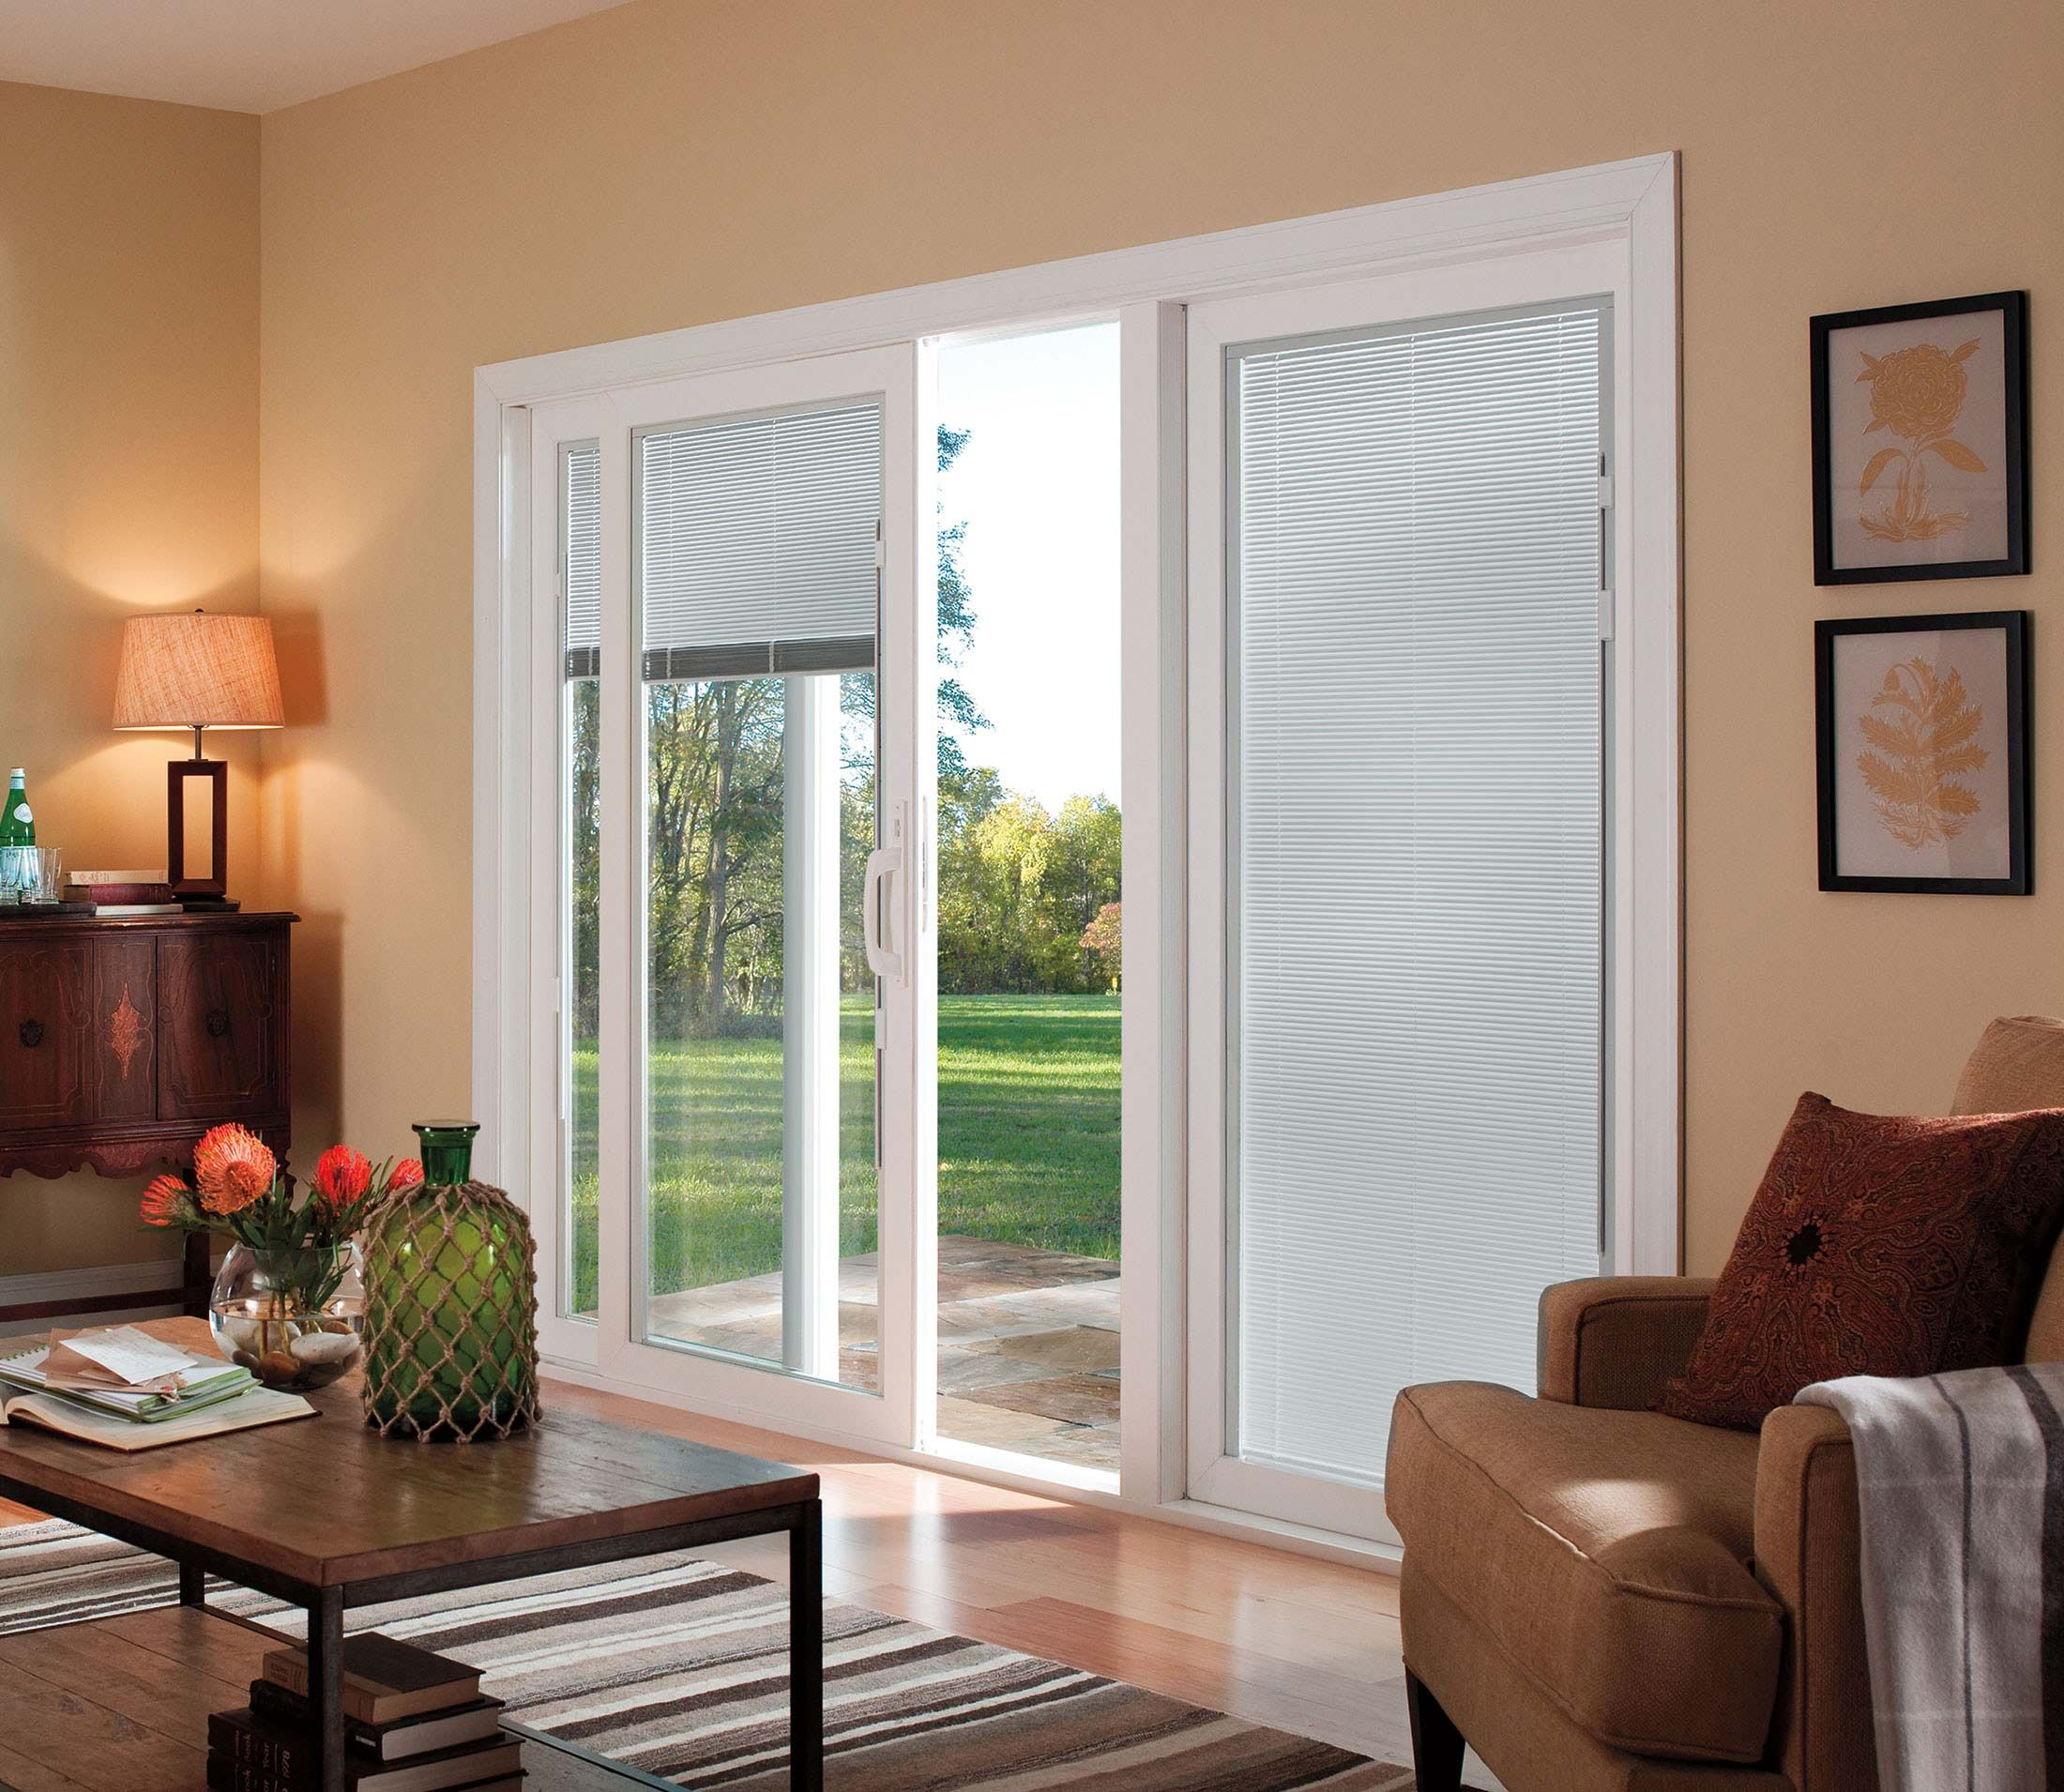 Pella 350 Series Sliding Patio Door Pella Vinyl Triple Pane